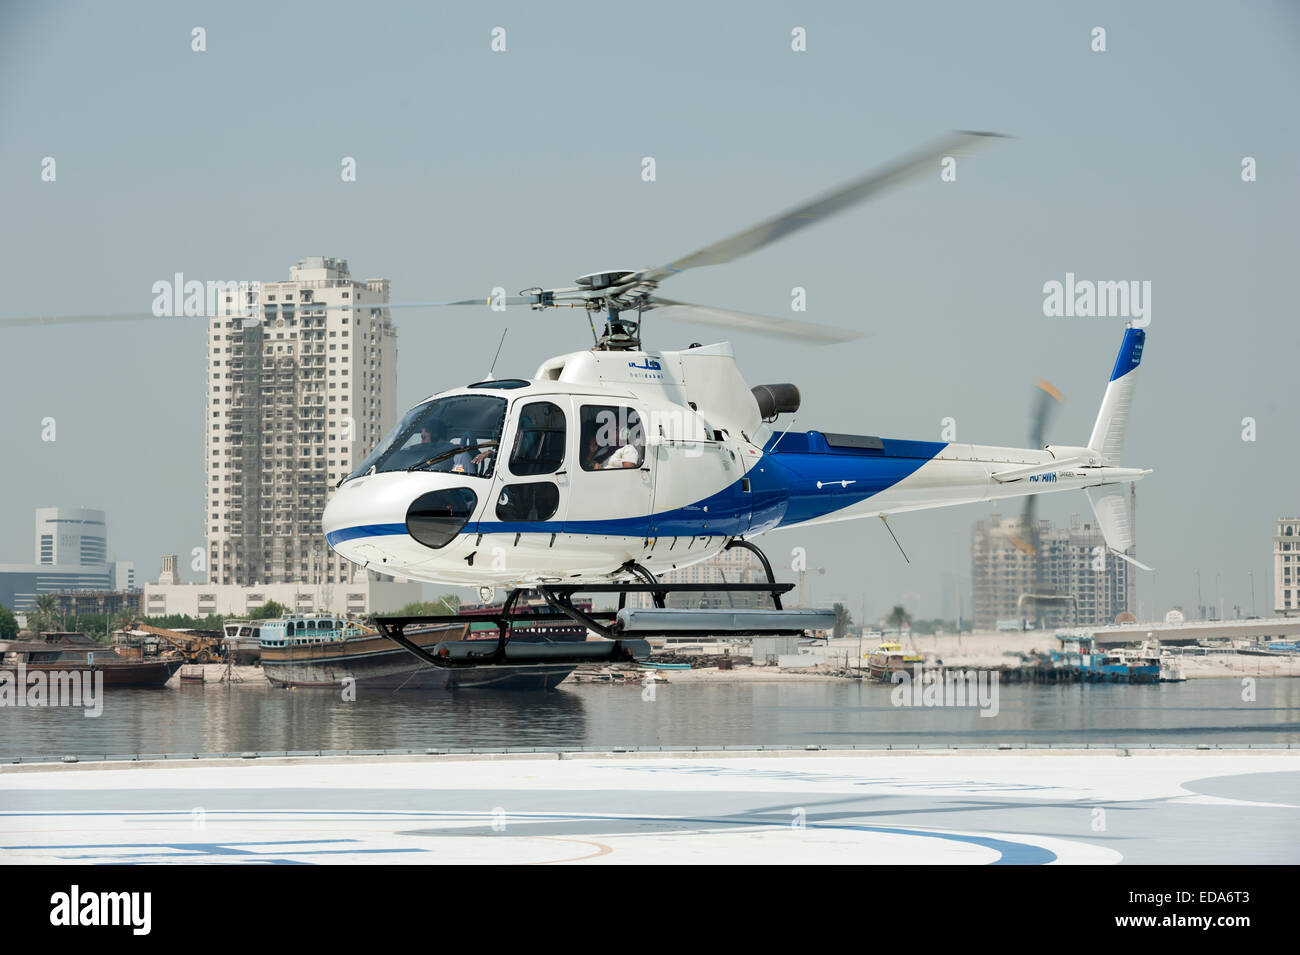 Helicopter Blades Spinning Stock Photos Amp Helicopter